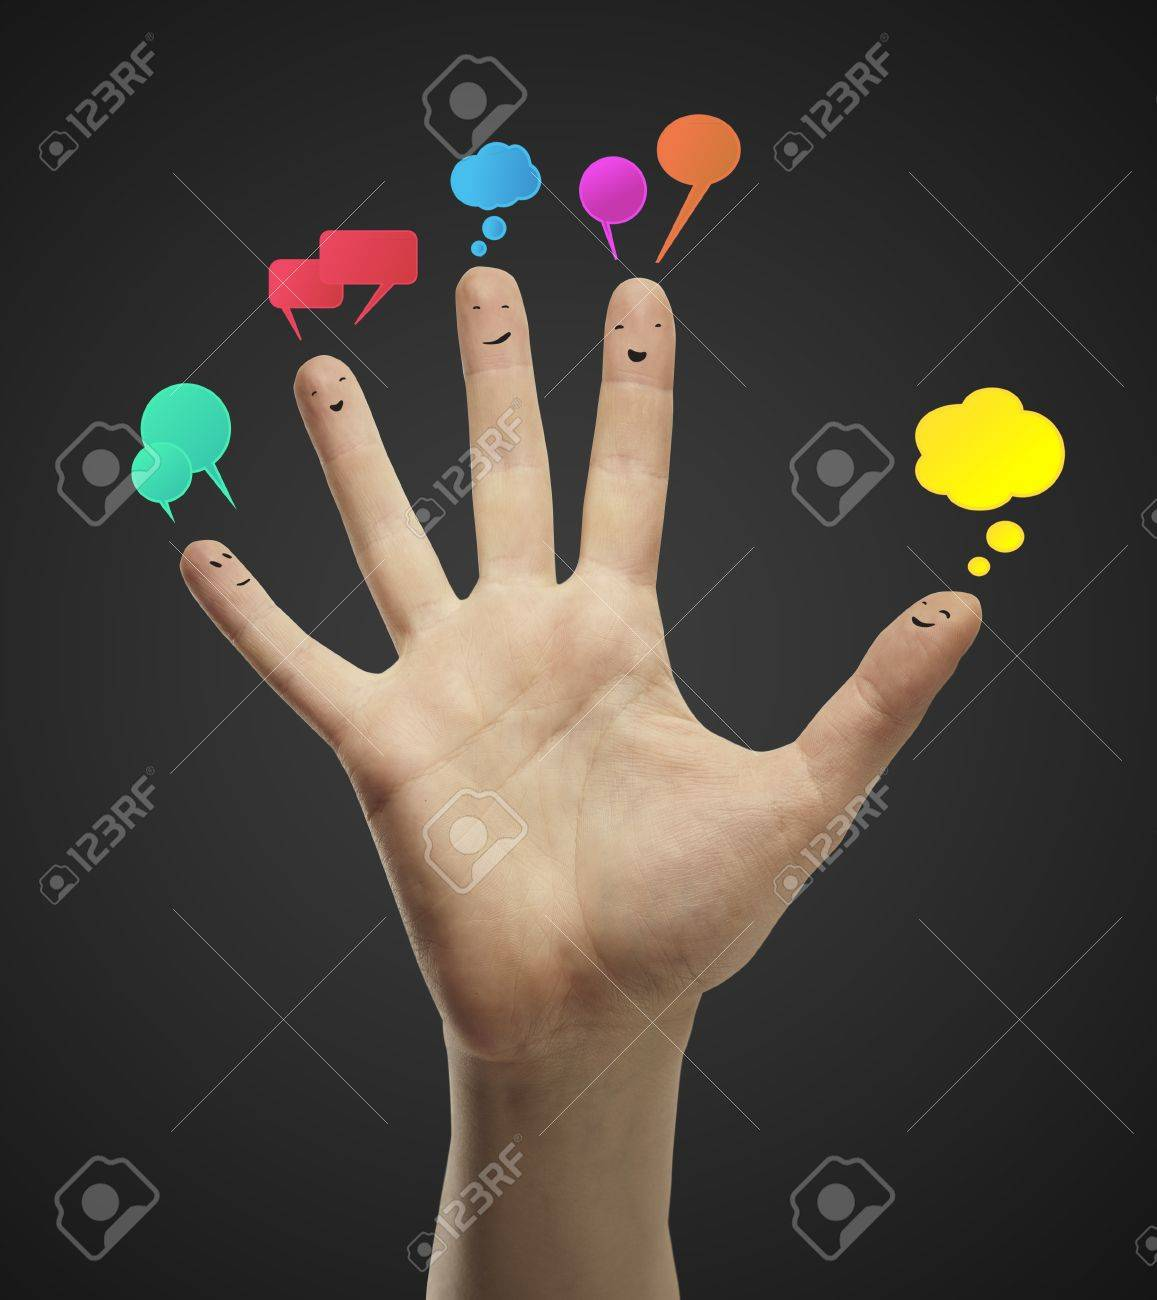 Happy group of finger smileys with social chat sign and speech bubbles. Fingers representing a social network. Stock Photo - 11788963